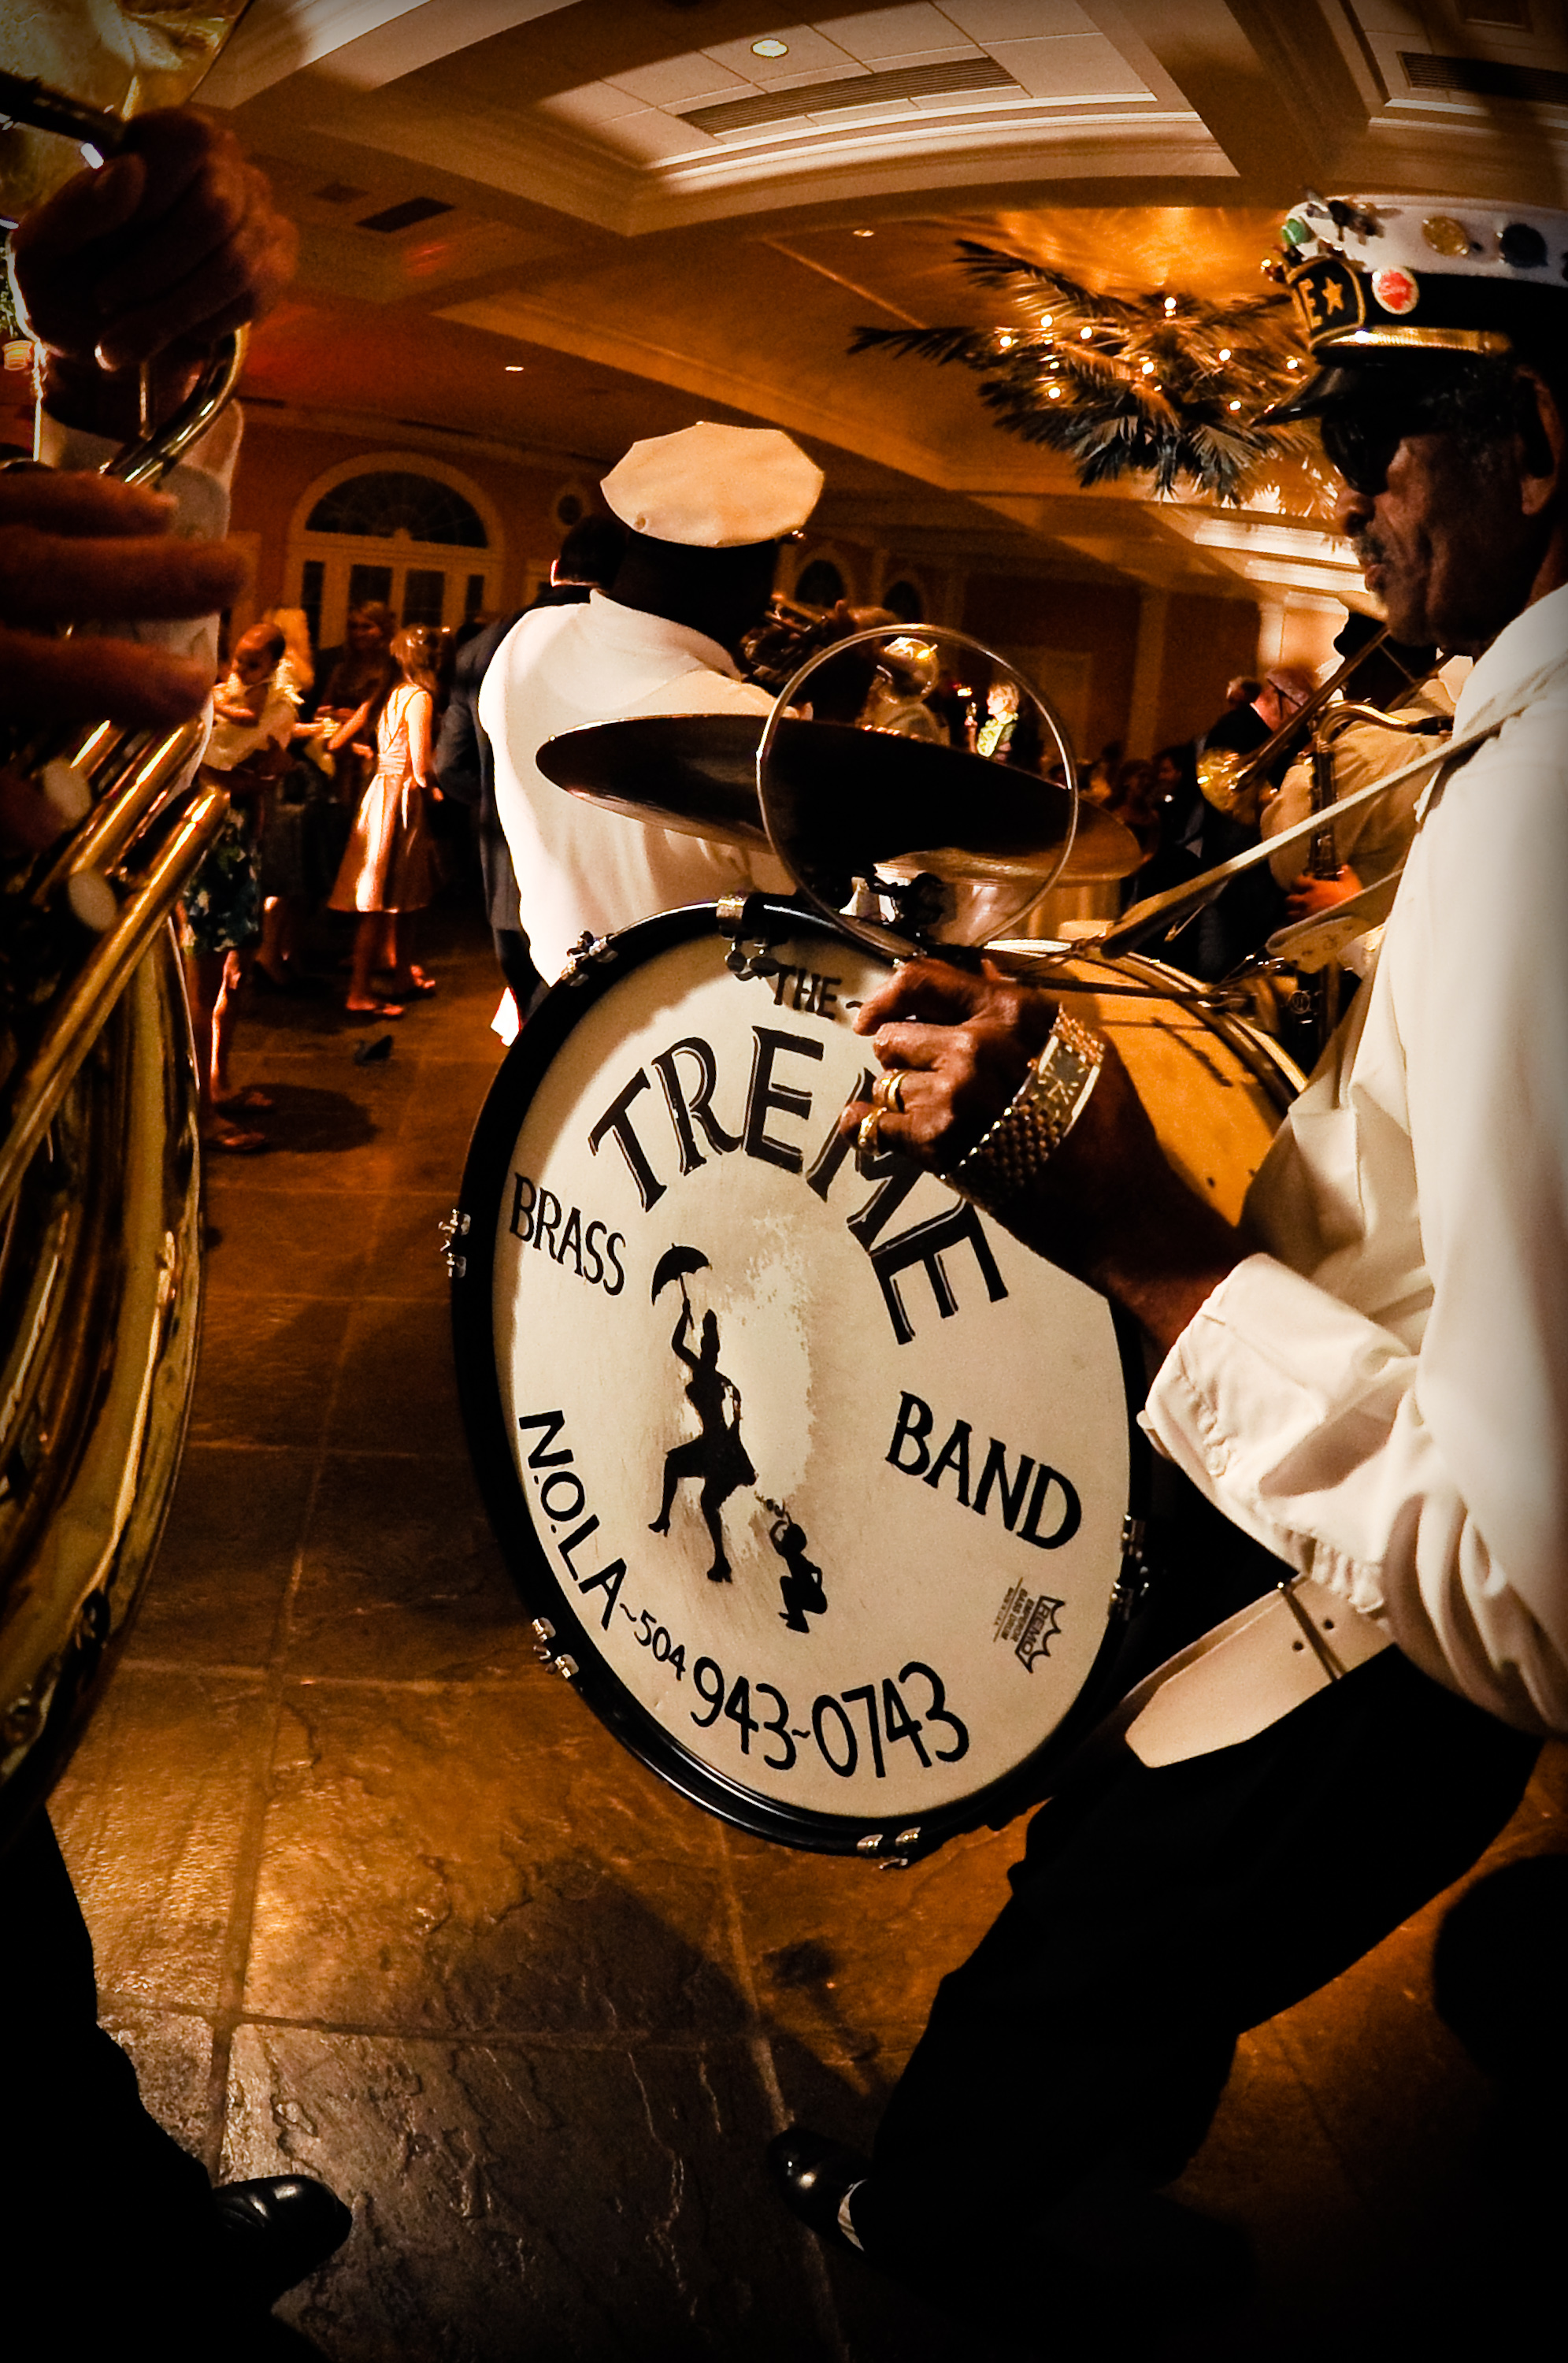 The historic Treme Brass band plays a wedding in the French Quarter, New Orleans